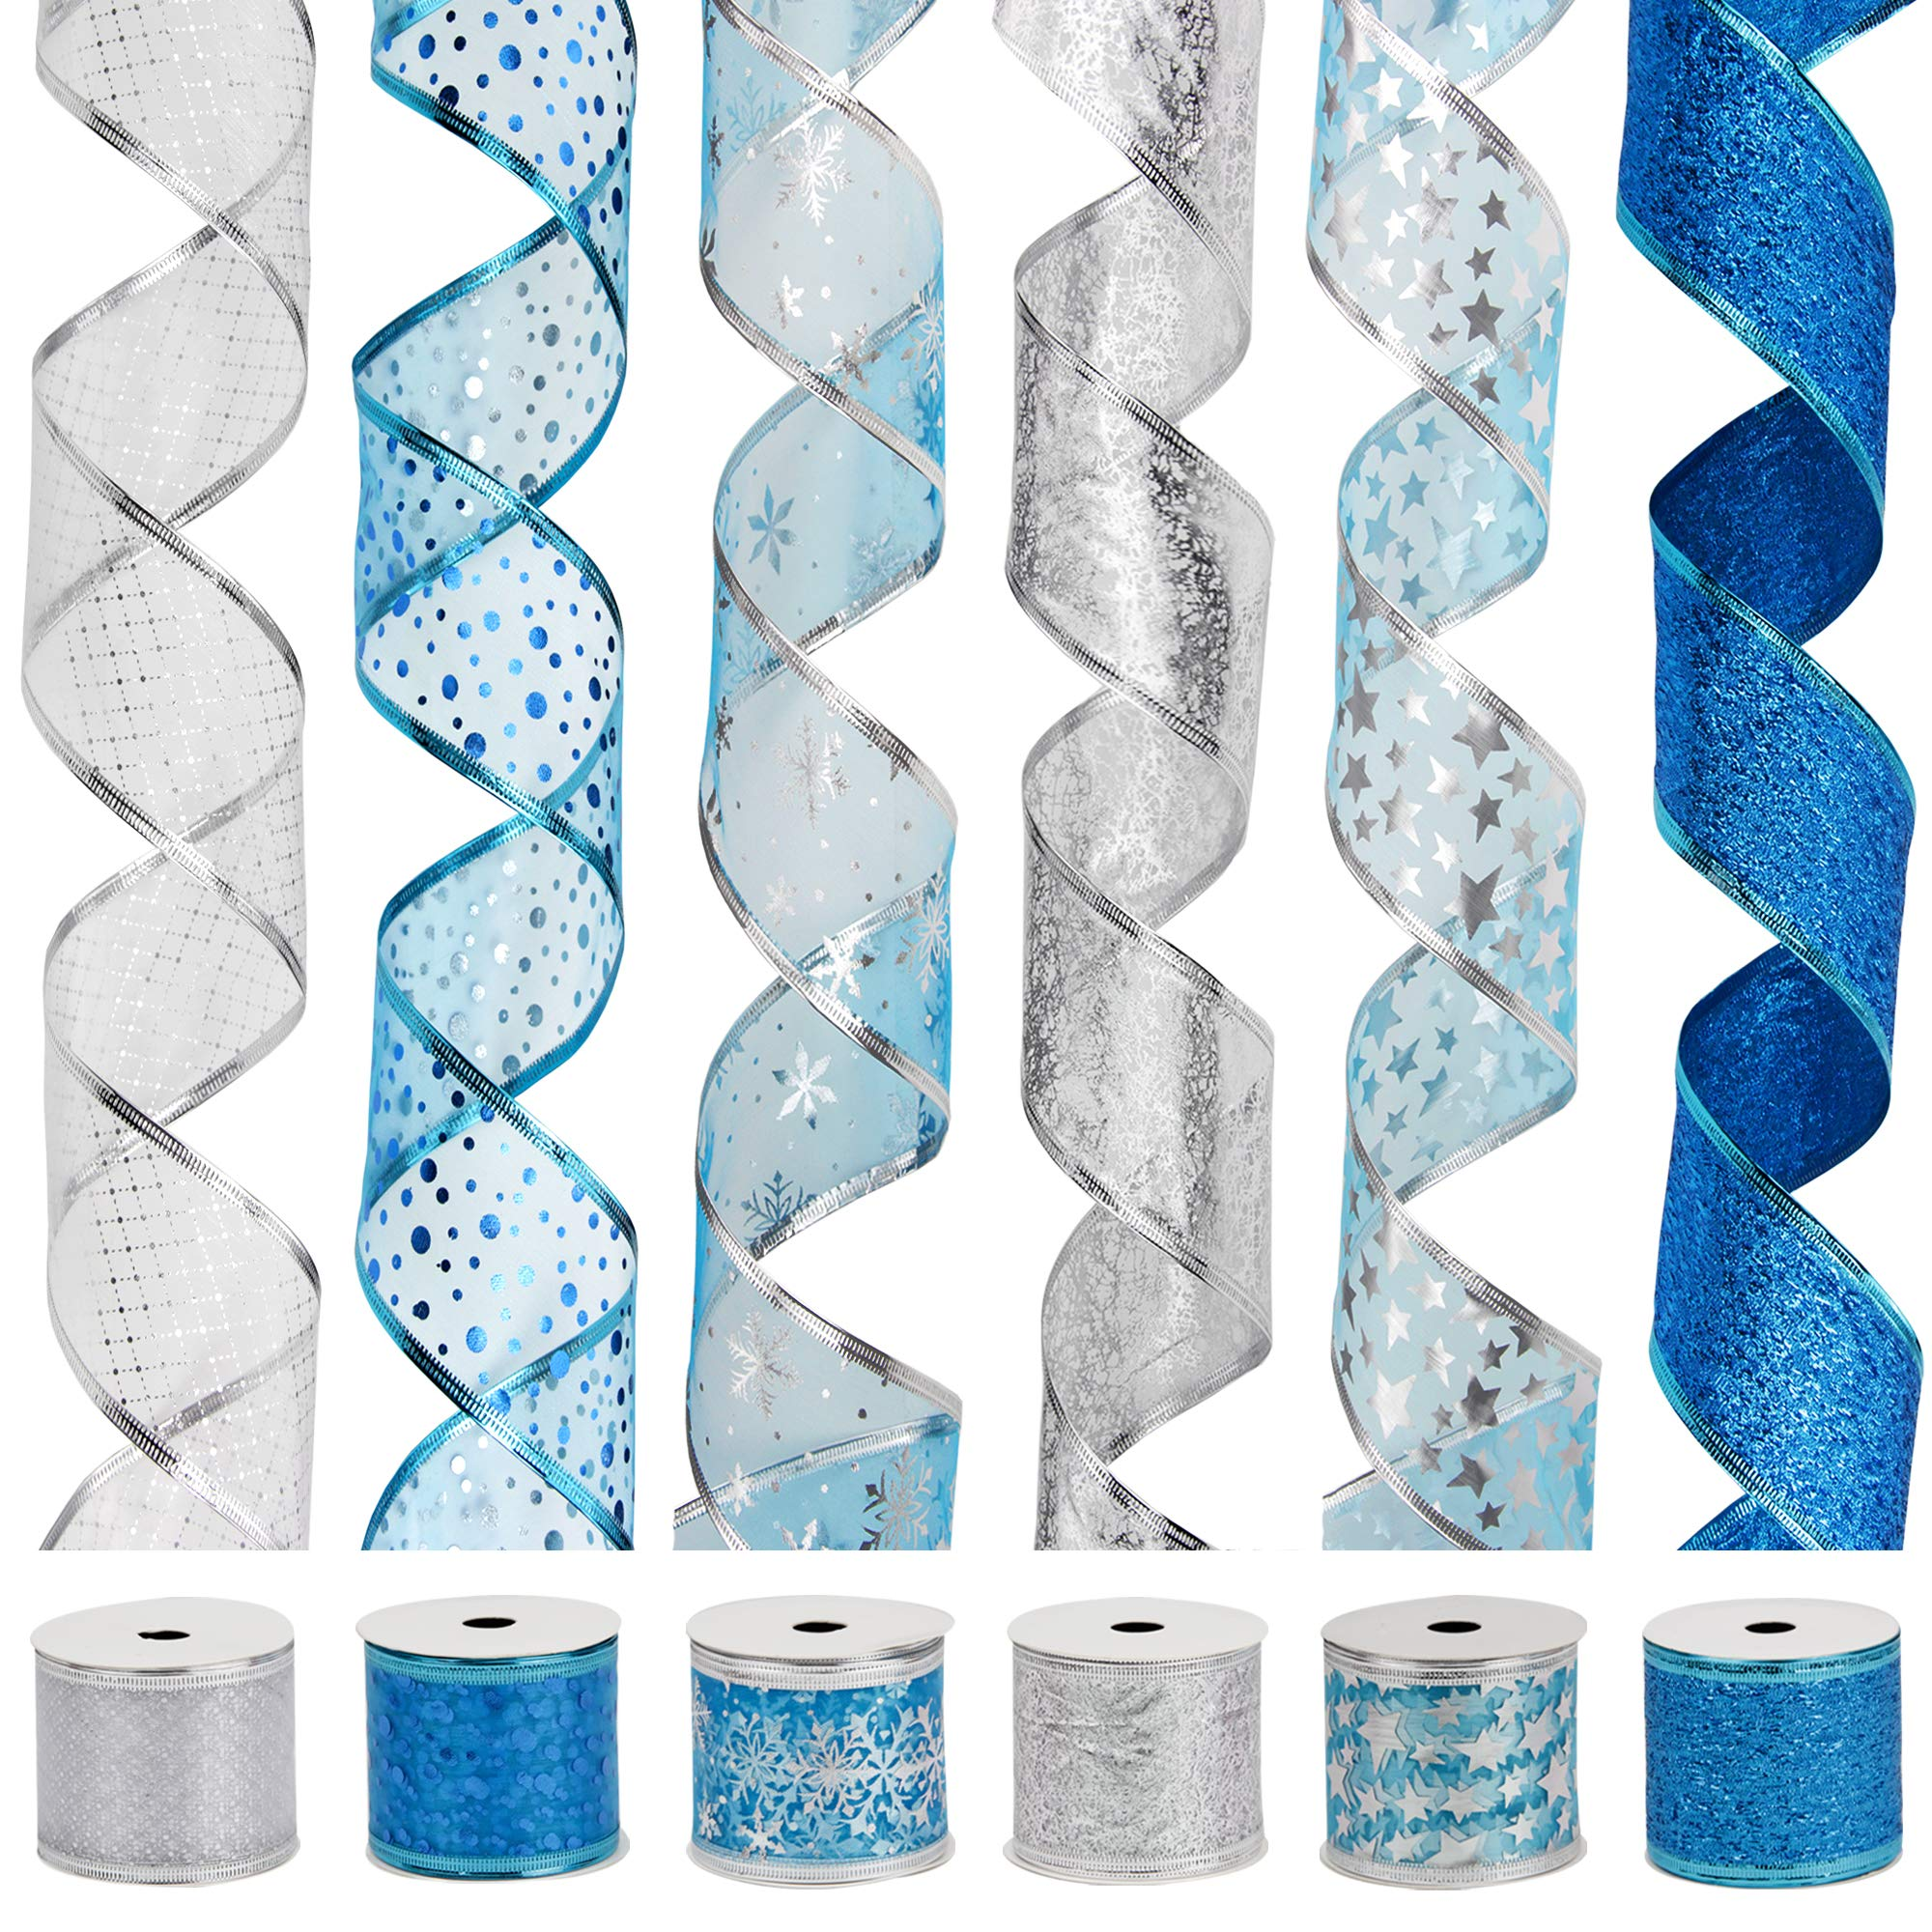 - Classical Swirl Sheer Glitter Ribbon 36 Yards 2.5 Width x 6Yard Each Roll VATIN Christmas Ribbon,Wired Holiday Party Ribbons Assorted Plaid Dot Holly Patterns Decorations